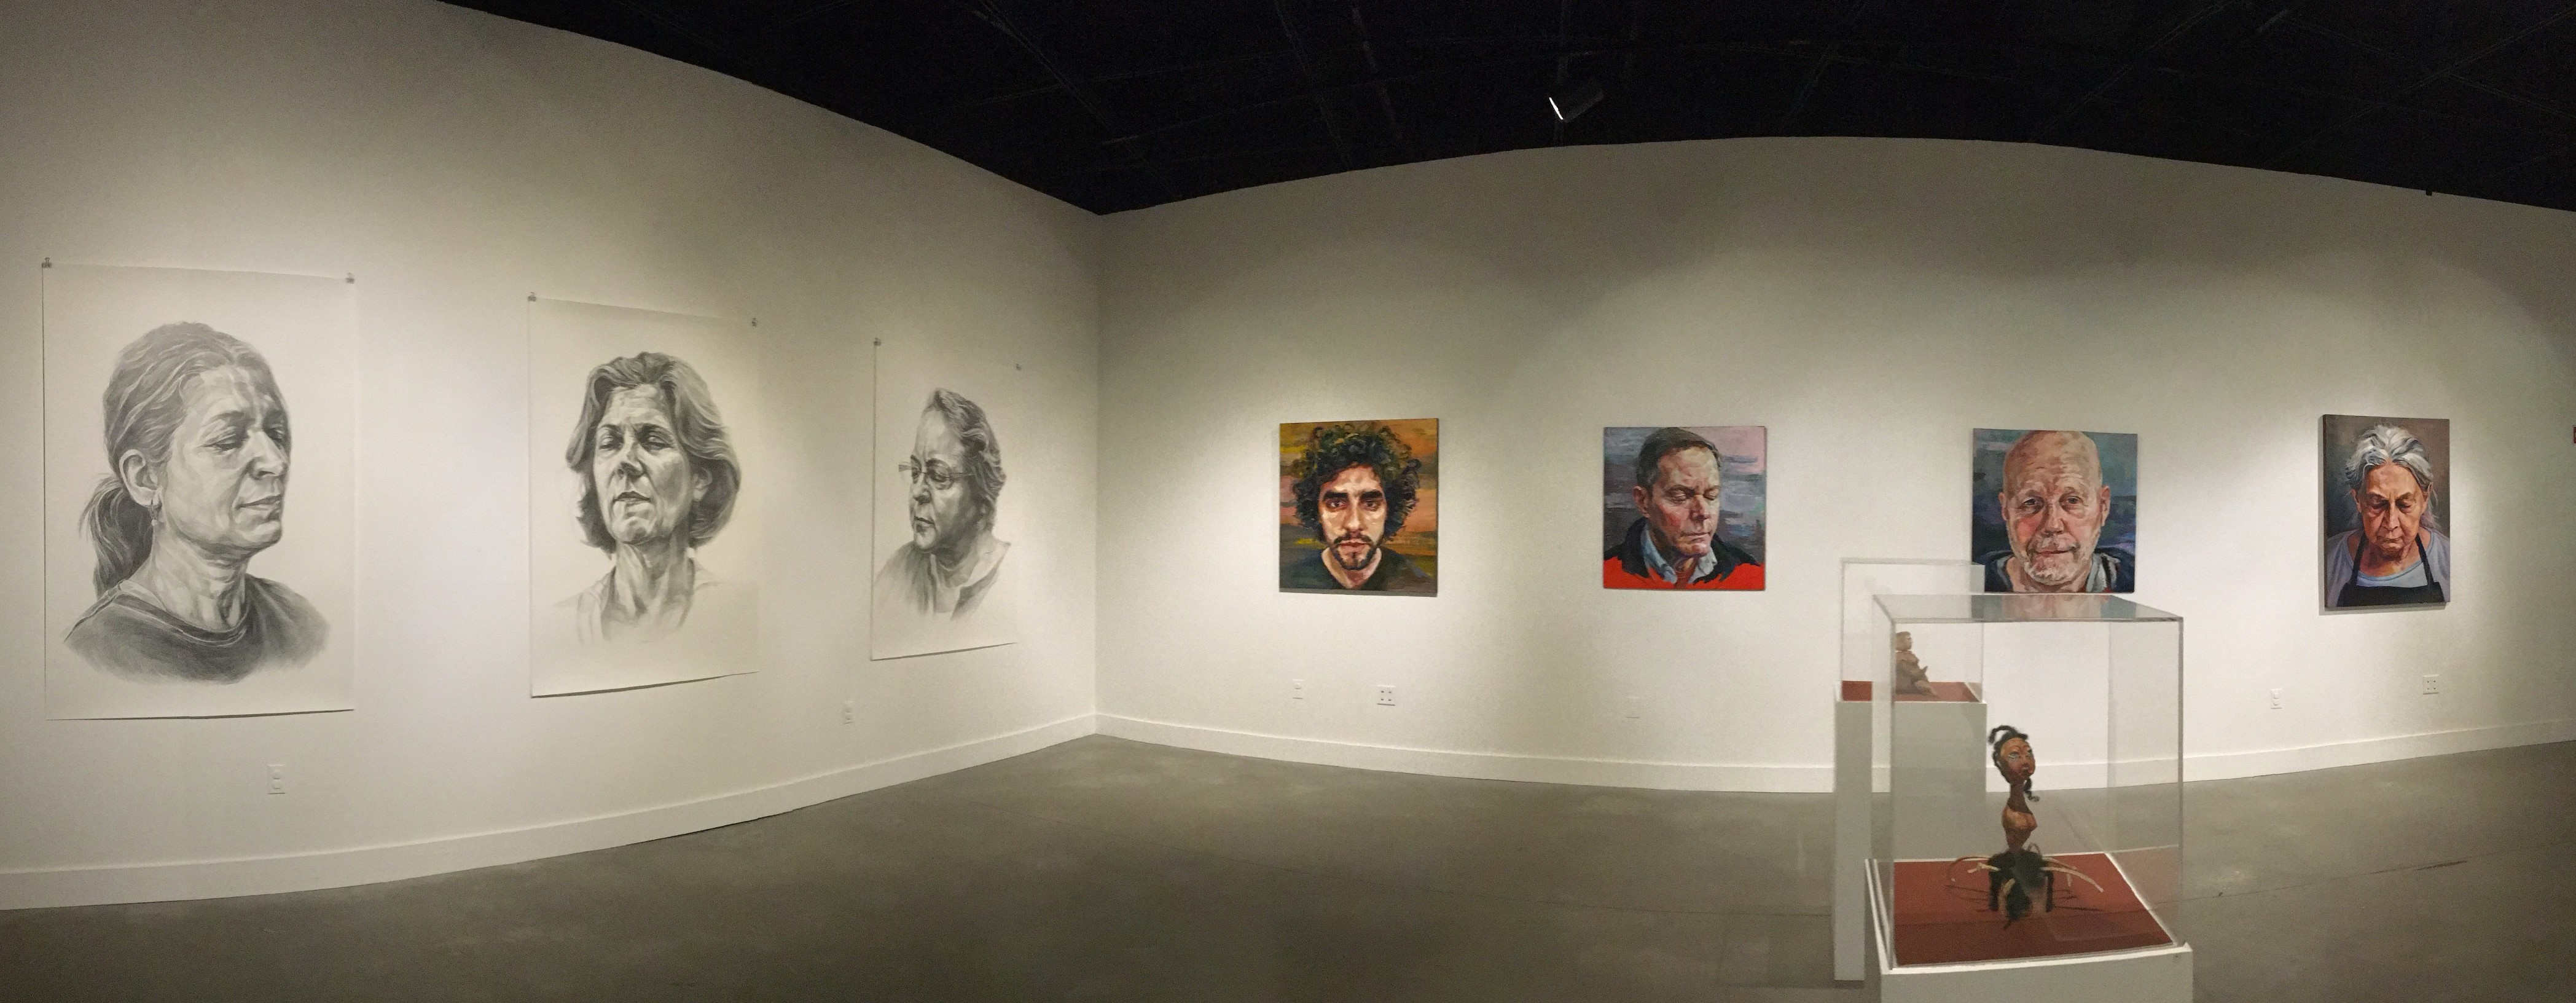 The Holtzman MFA Gallery exhibition